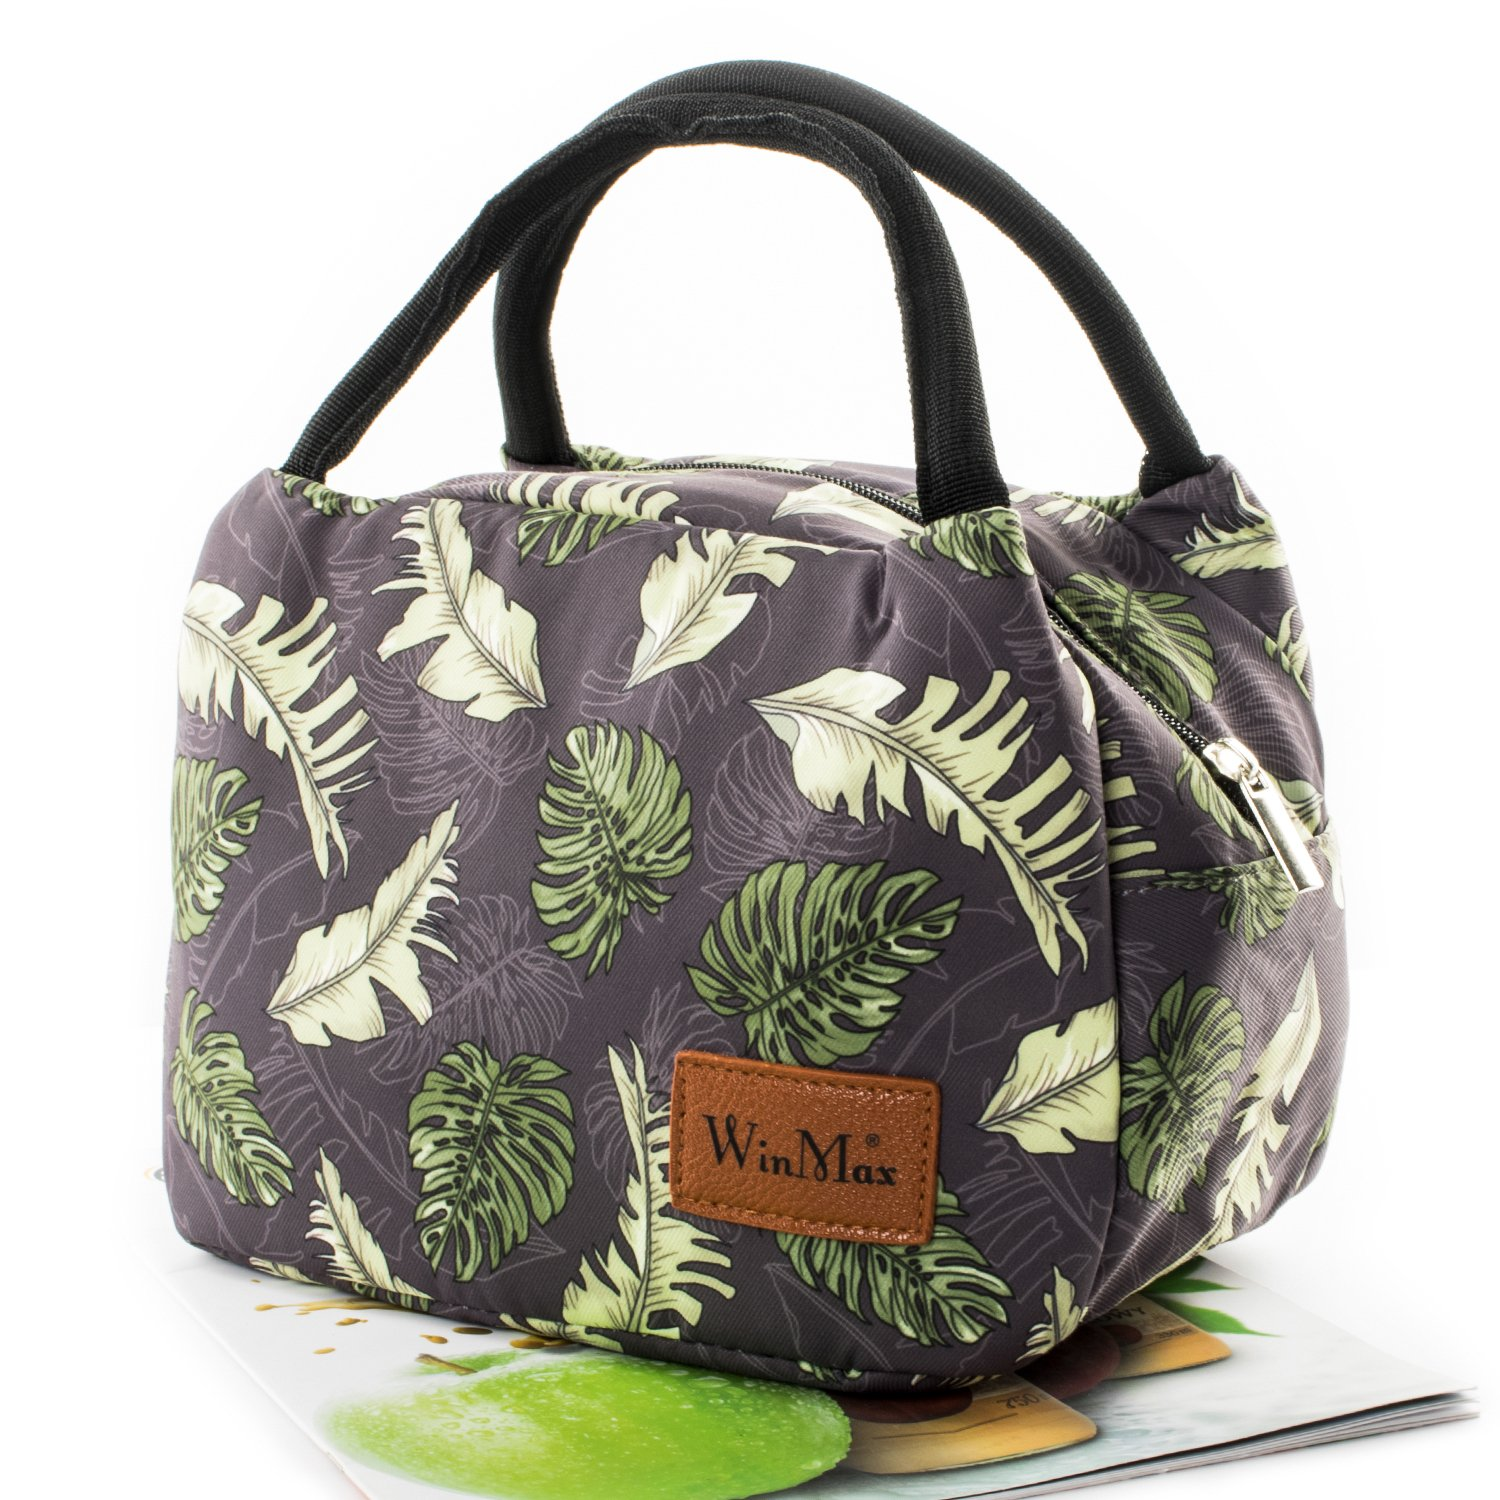 Fashionable Lunch Box for Women Insulated Cute Lunch Bag Girls - Pink/Heart/Colour stripe (Coconut leaf)